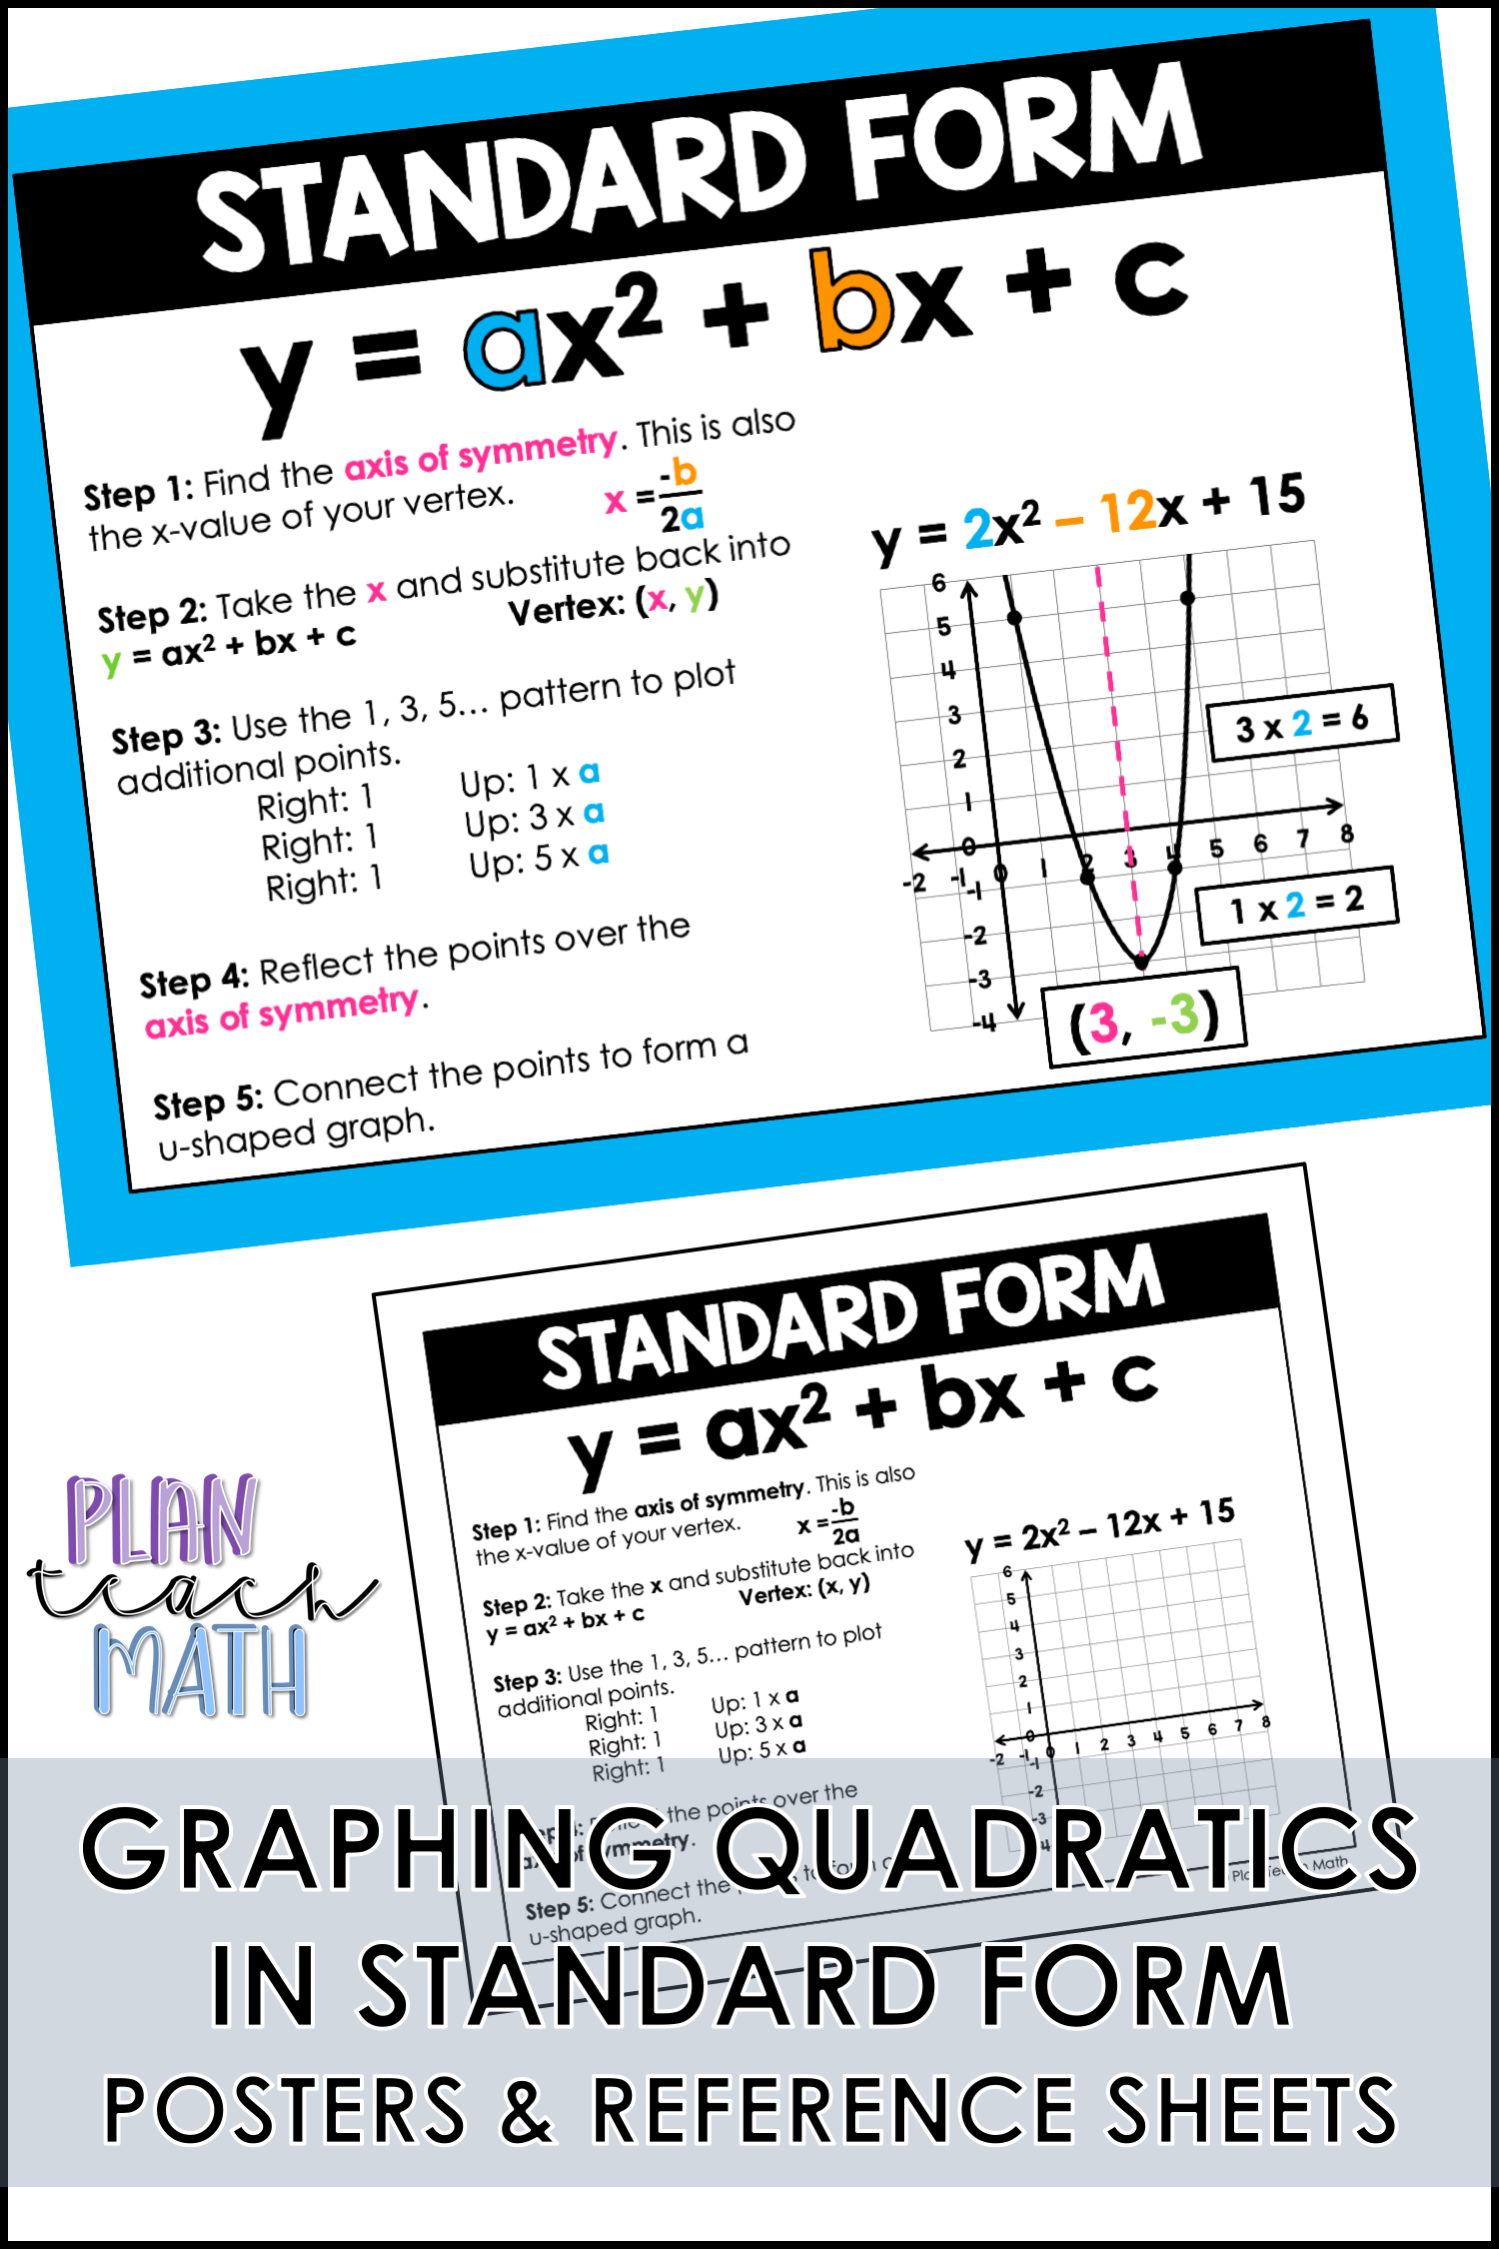 This Graphing Quadratics In Standard Form Poster Set